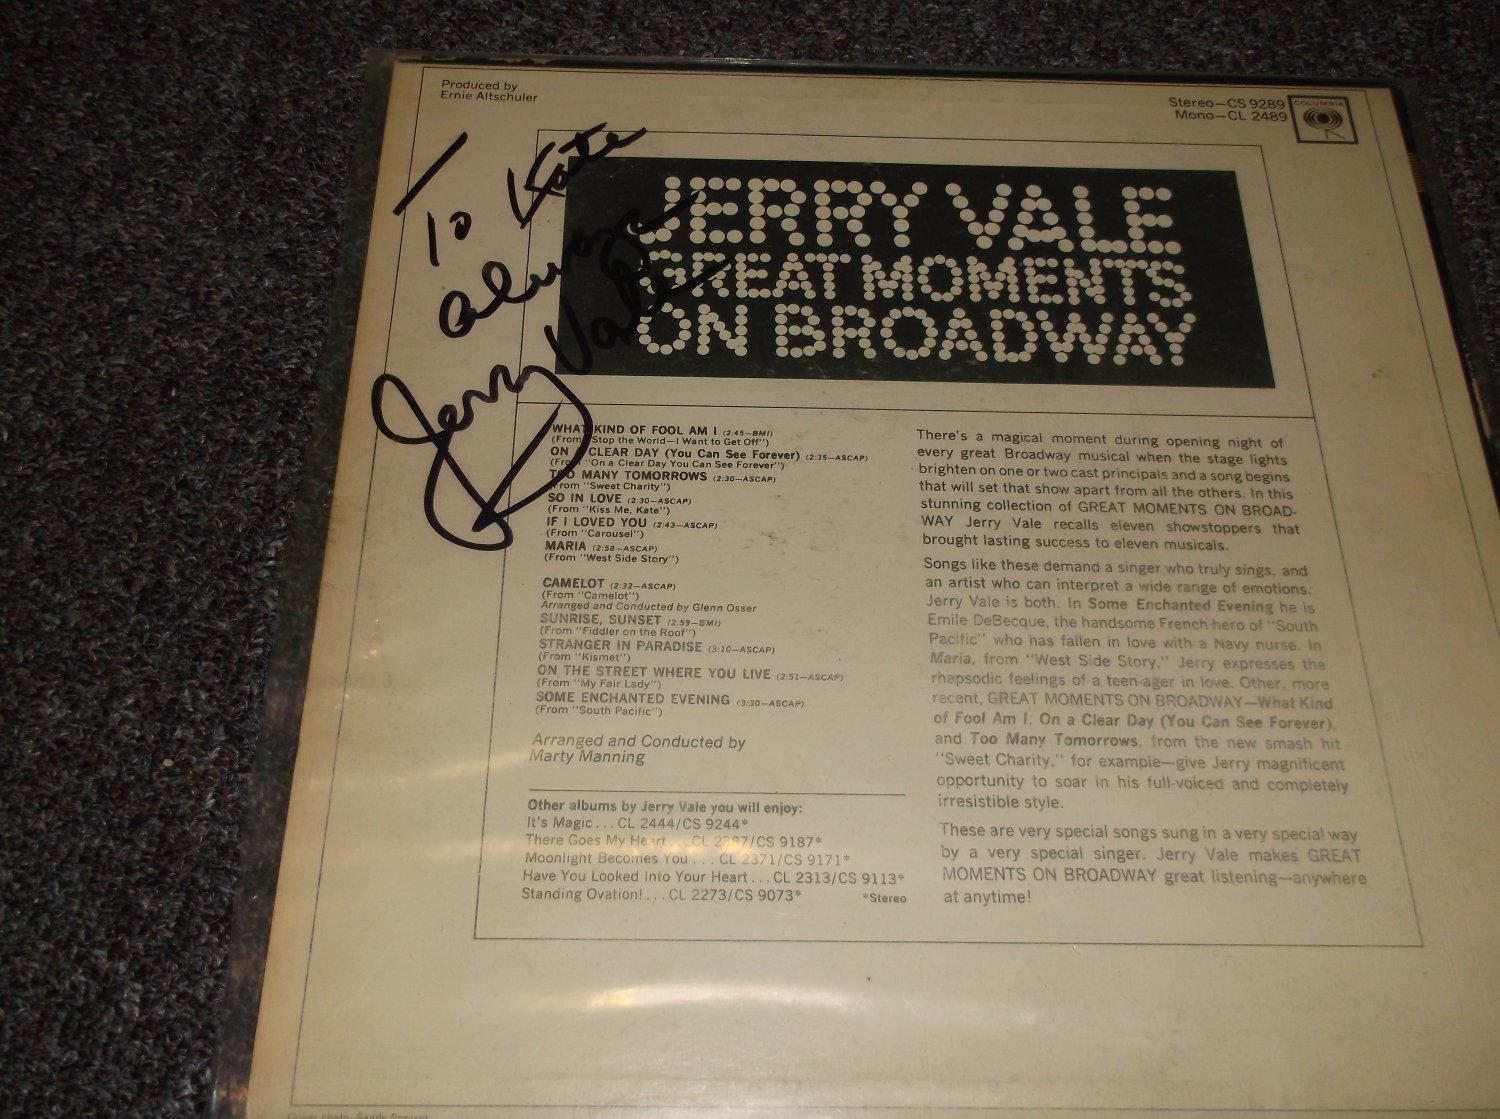 Jerry Vale 1930-2014 signed inscribed LP back cover